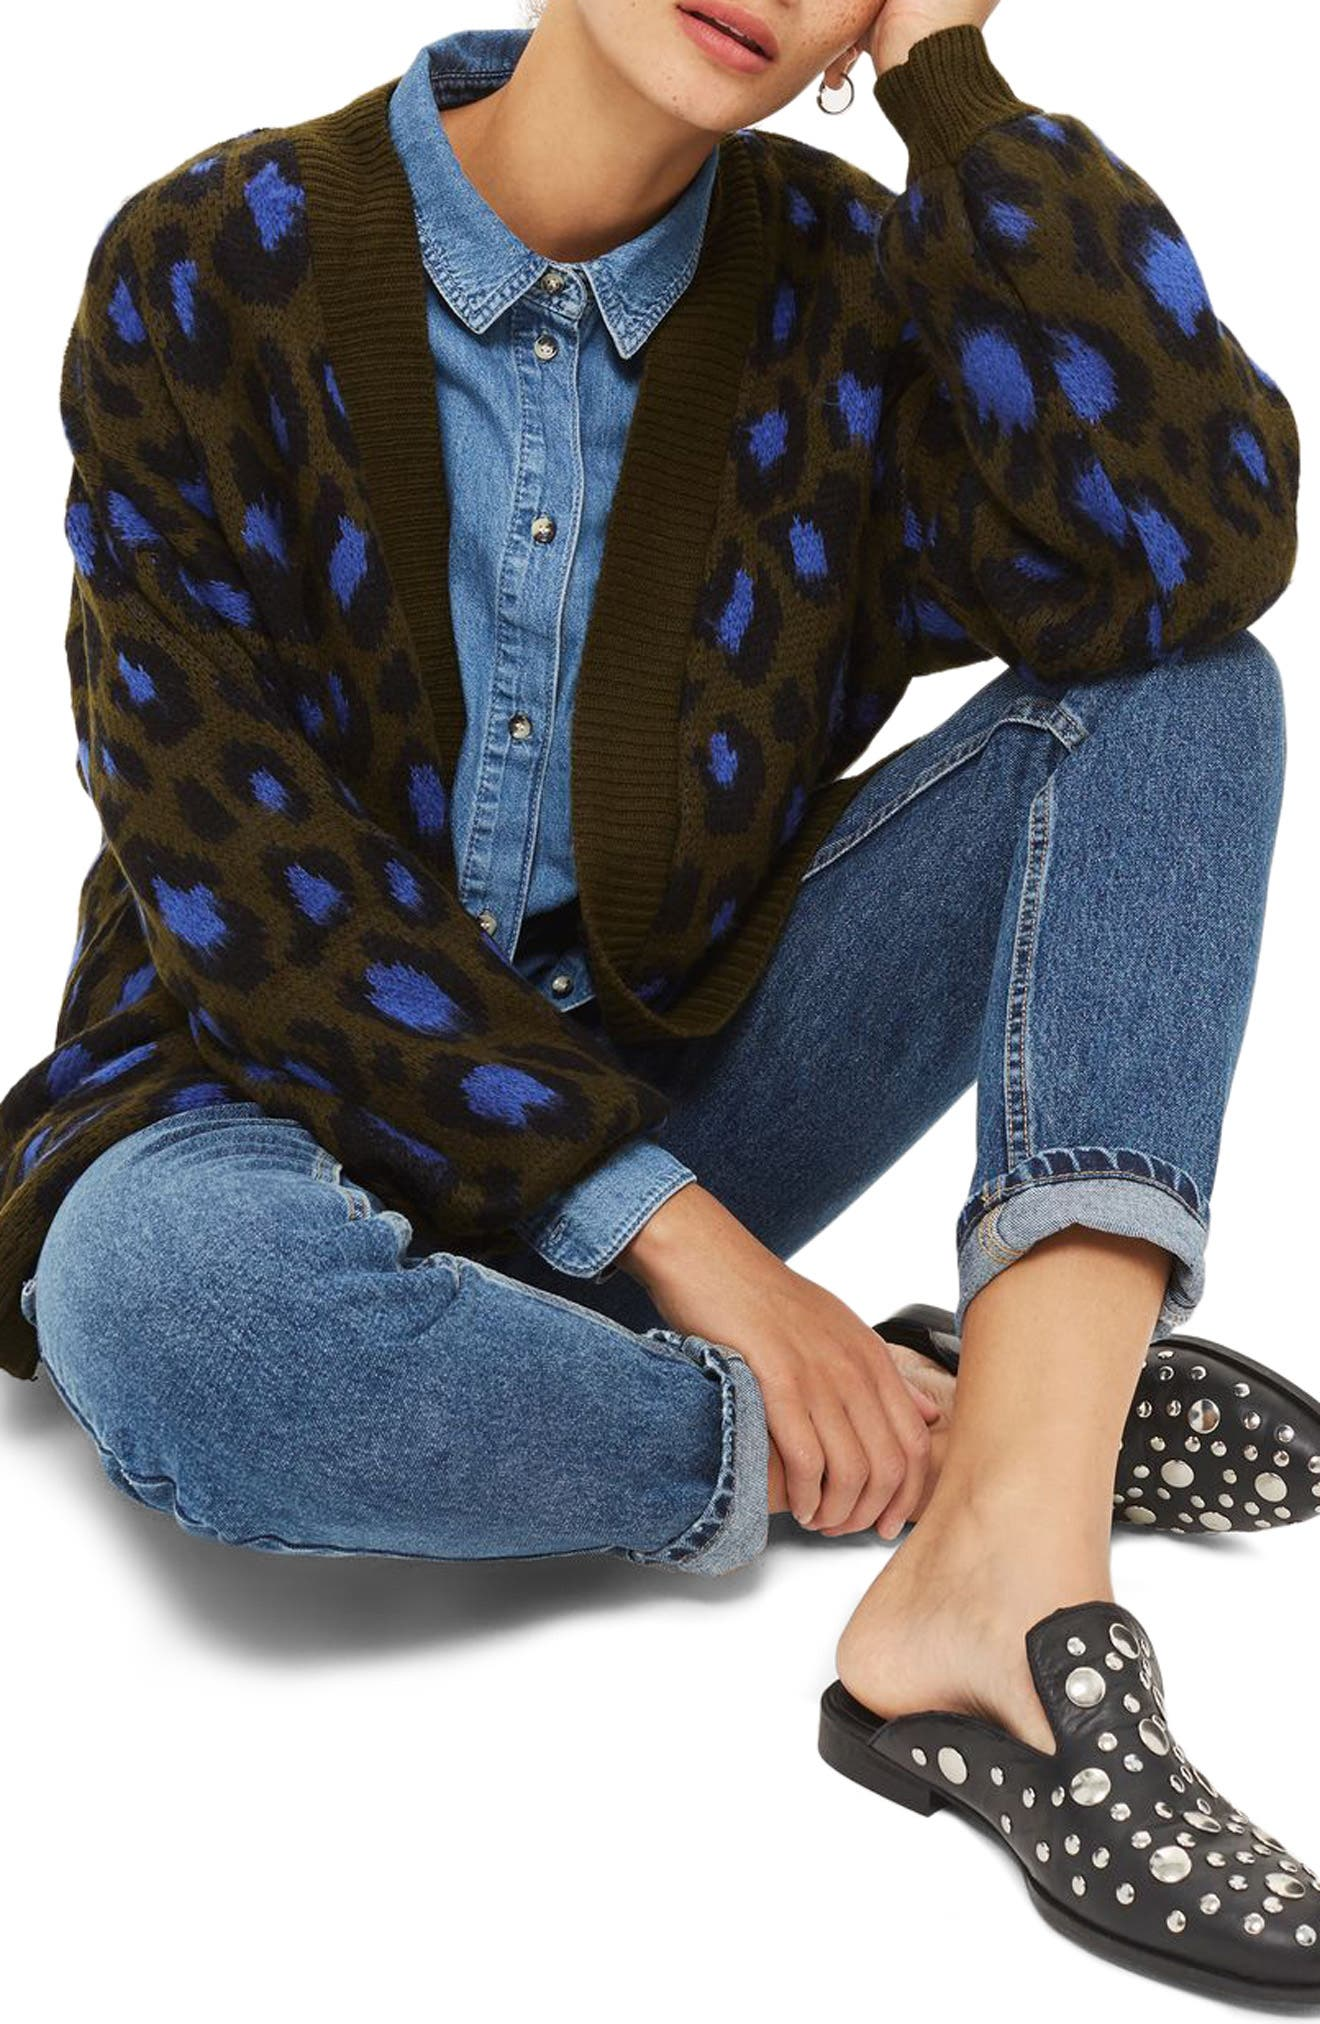 Alternate Image 1 Selected - Topshop Leopard Print Cardigan